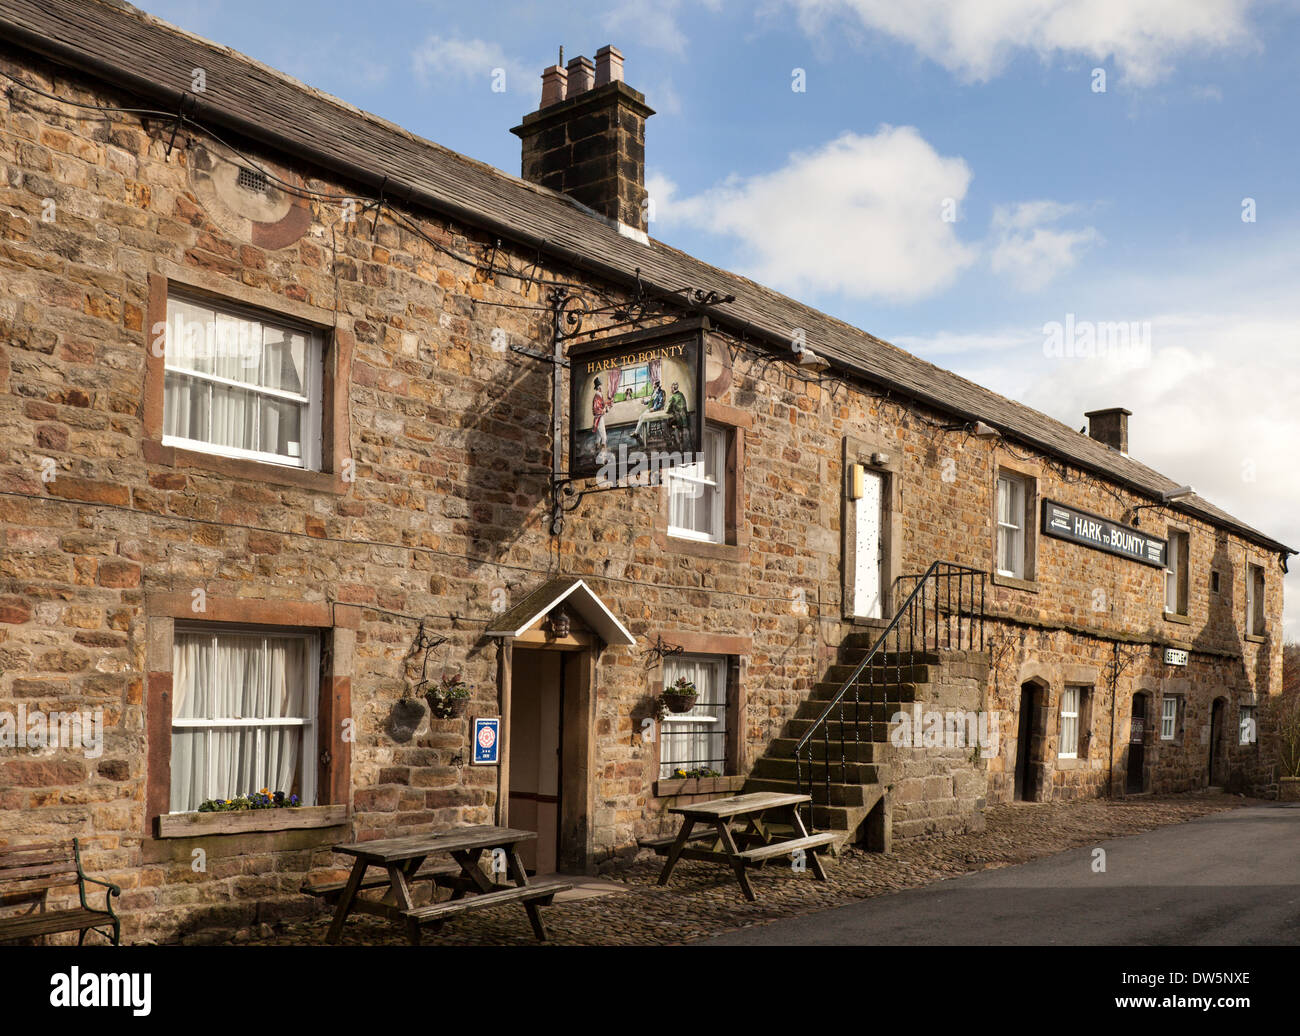 Hark to Bounty coaching inn,  a stone built Country Pub & restaurant in Slaidburn, Trough, or Forest,  of Bowland, Lancashire, UK - Stock Image